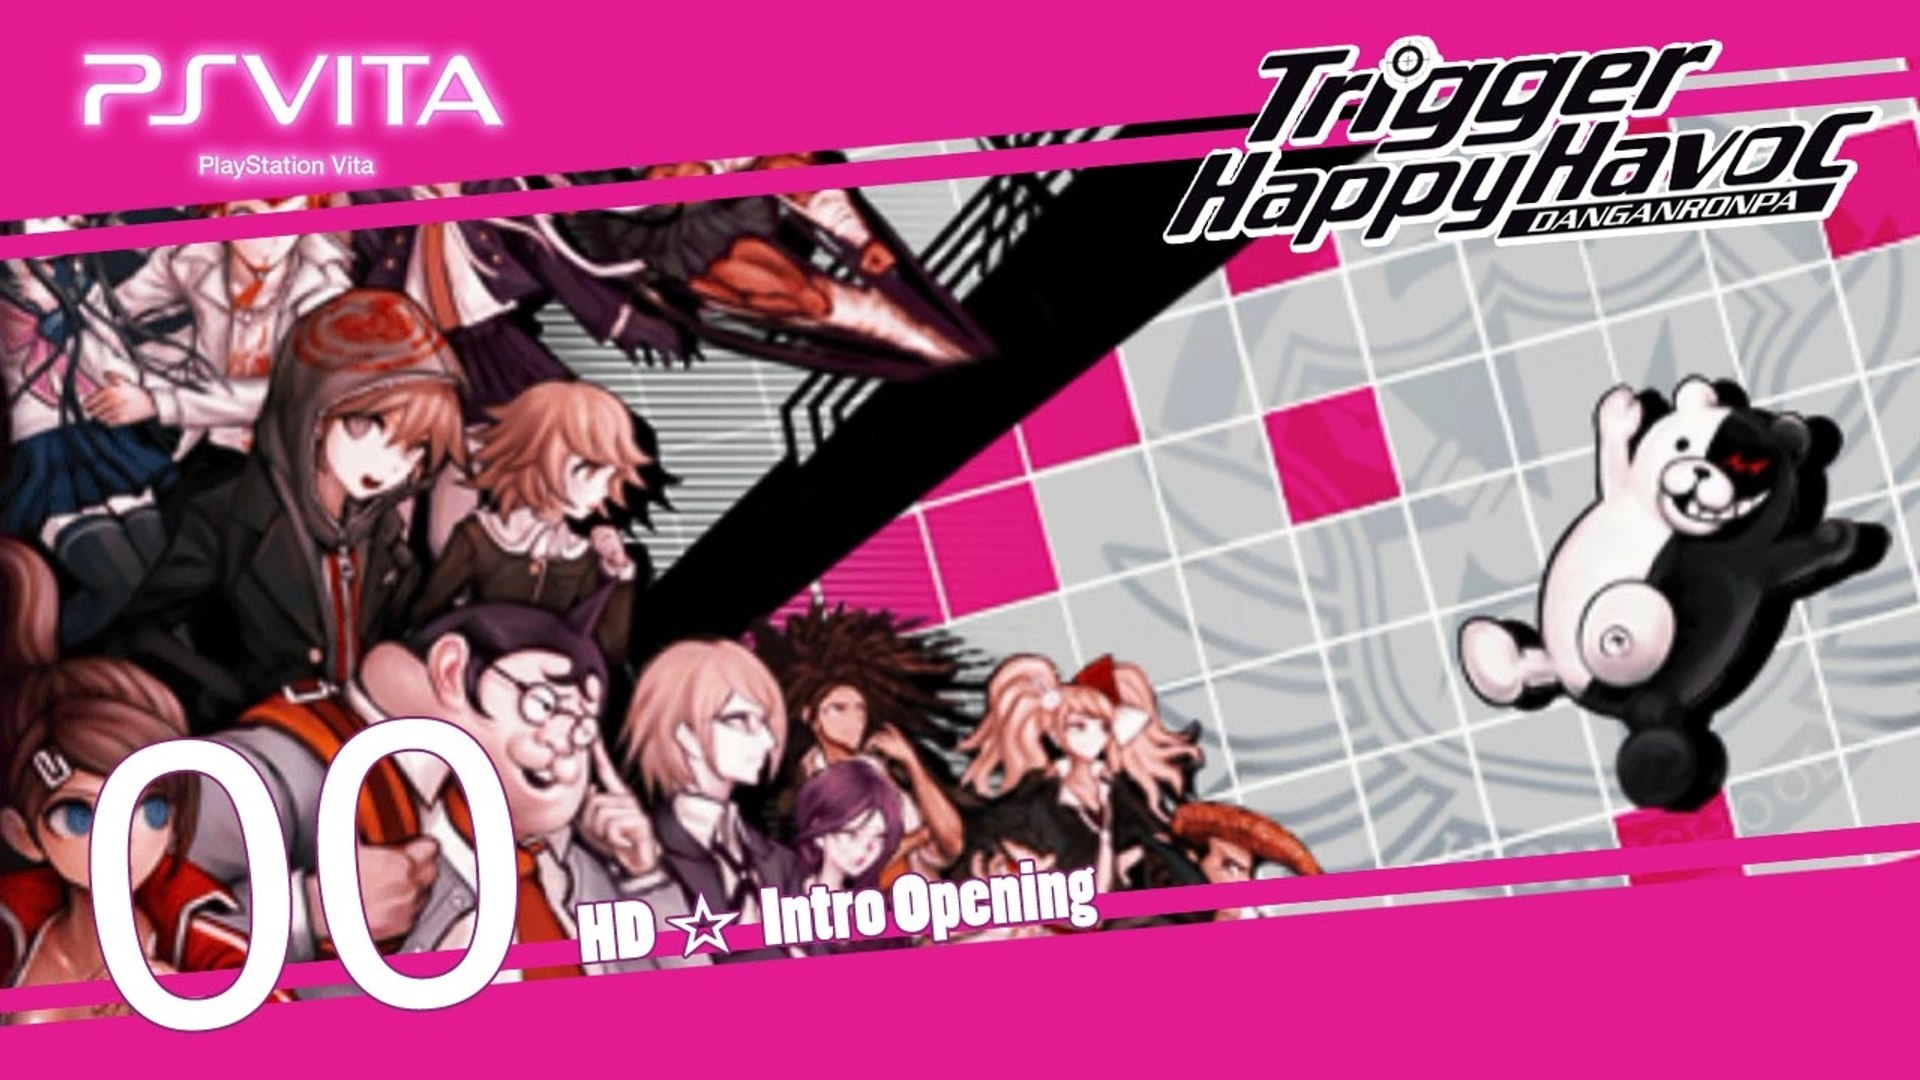 Danganronpa Trigger Happy Havoc Psv Intro Video Dailymotion